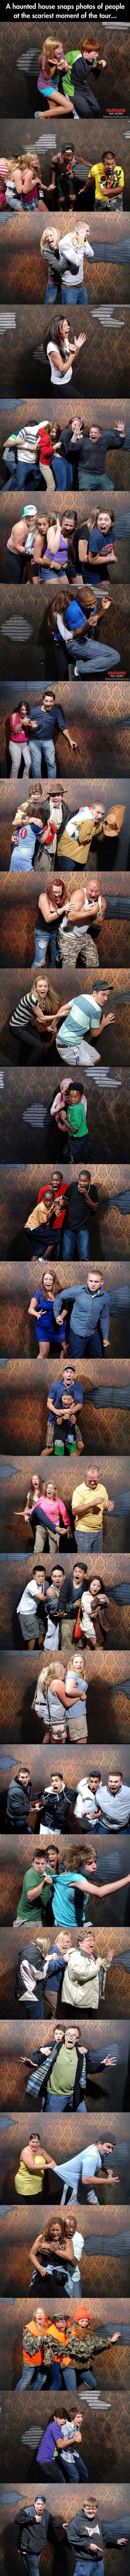 Hilarious Photos Of People On A Haunted Tour